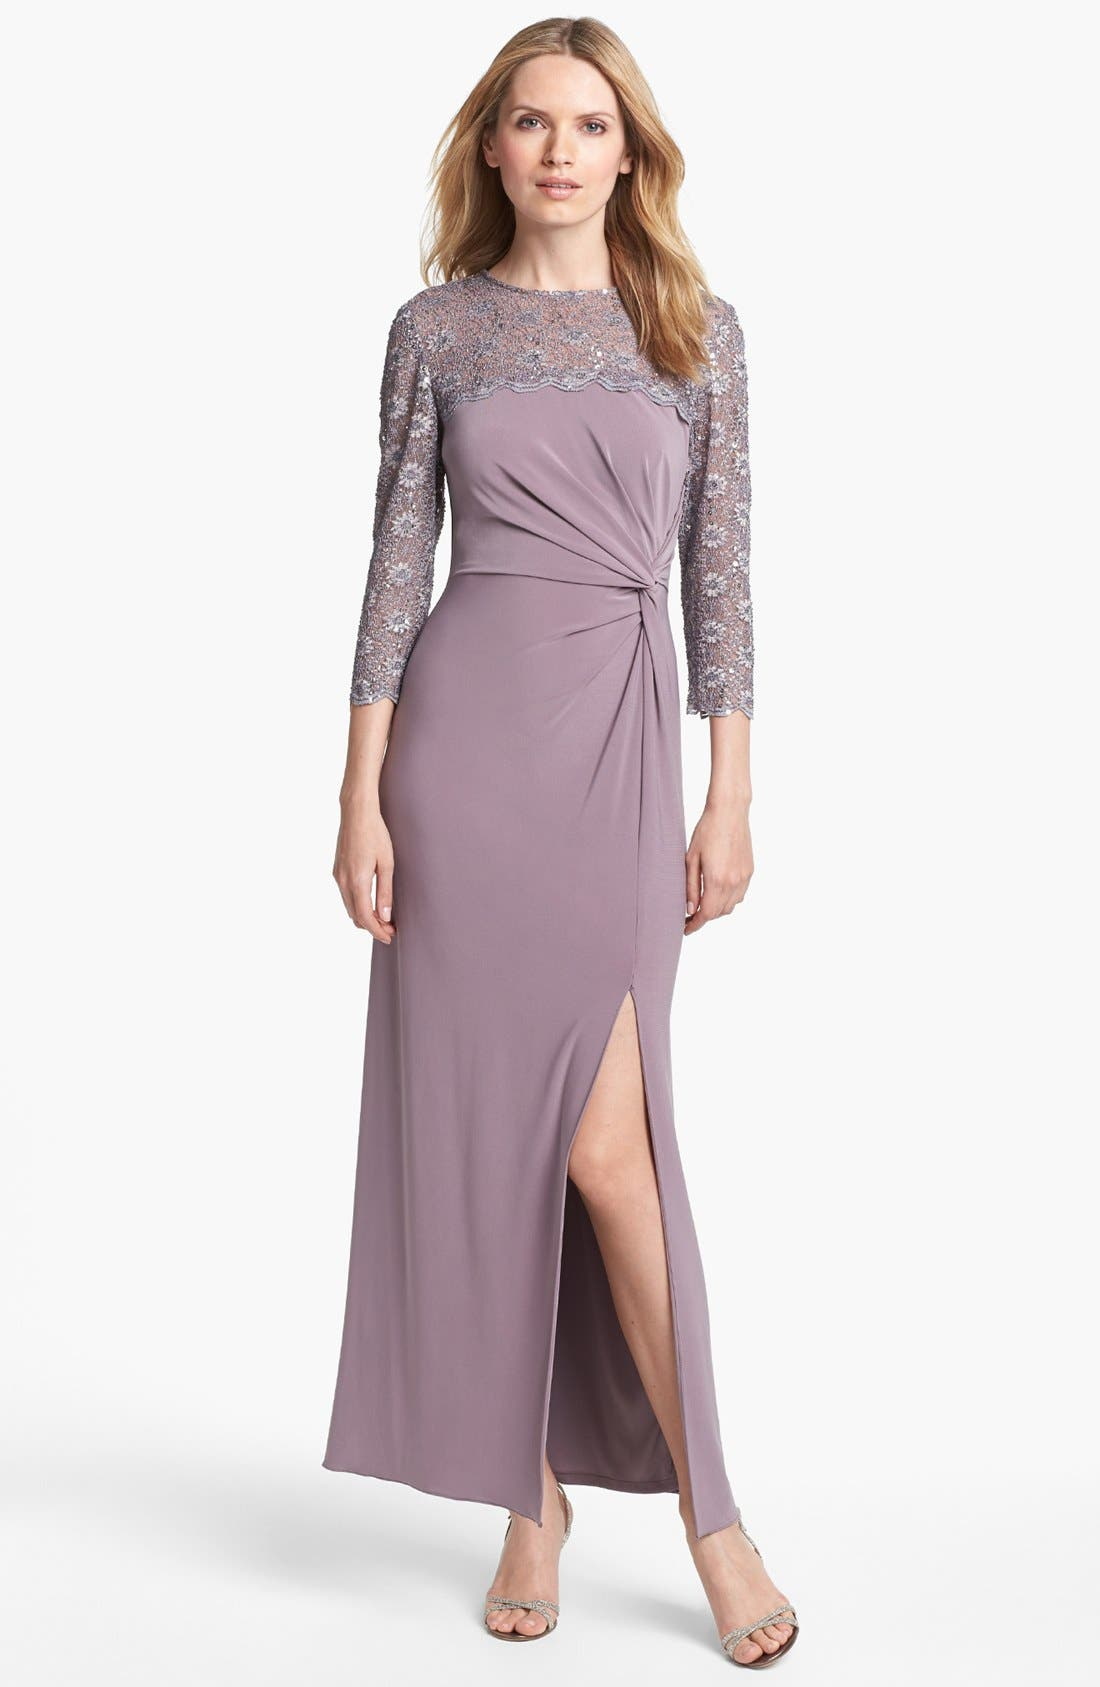 Alternate Image 1 Selected - Alex Evenings Lace Yoke Knotted Jersey Gown